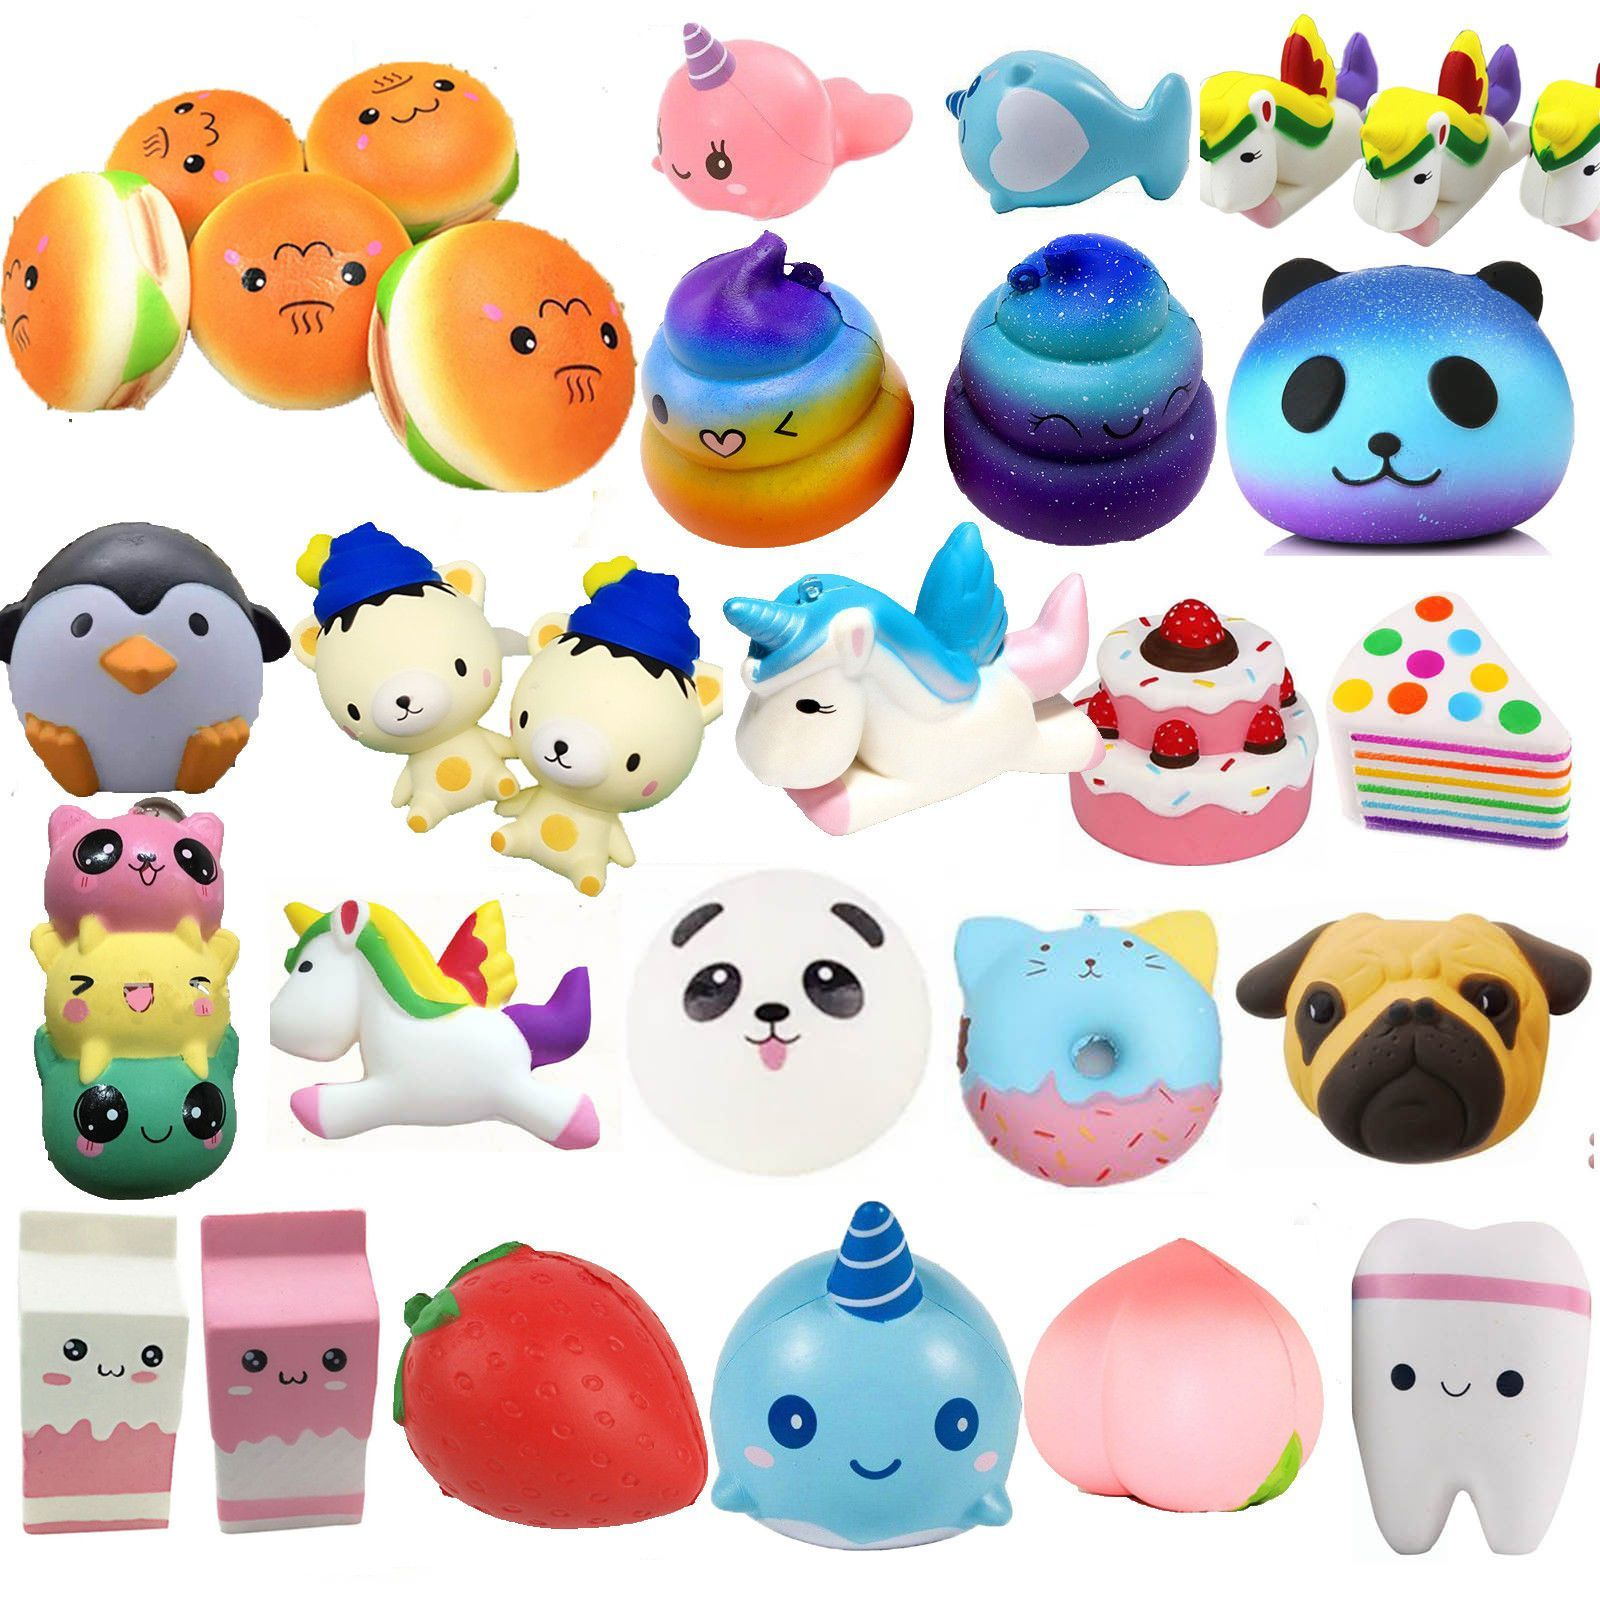 Jumbo Squishies Scented Charms Squishy Squeeze Slow Rising Toy Stress Reliever Panda Fan Shop ...